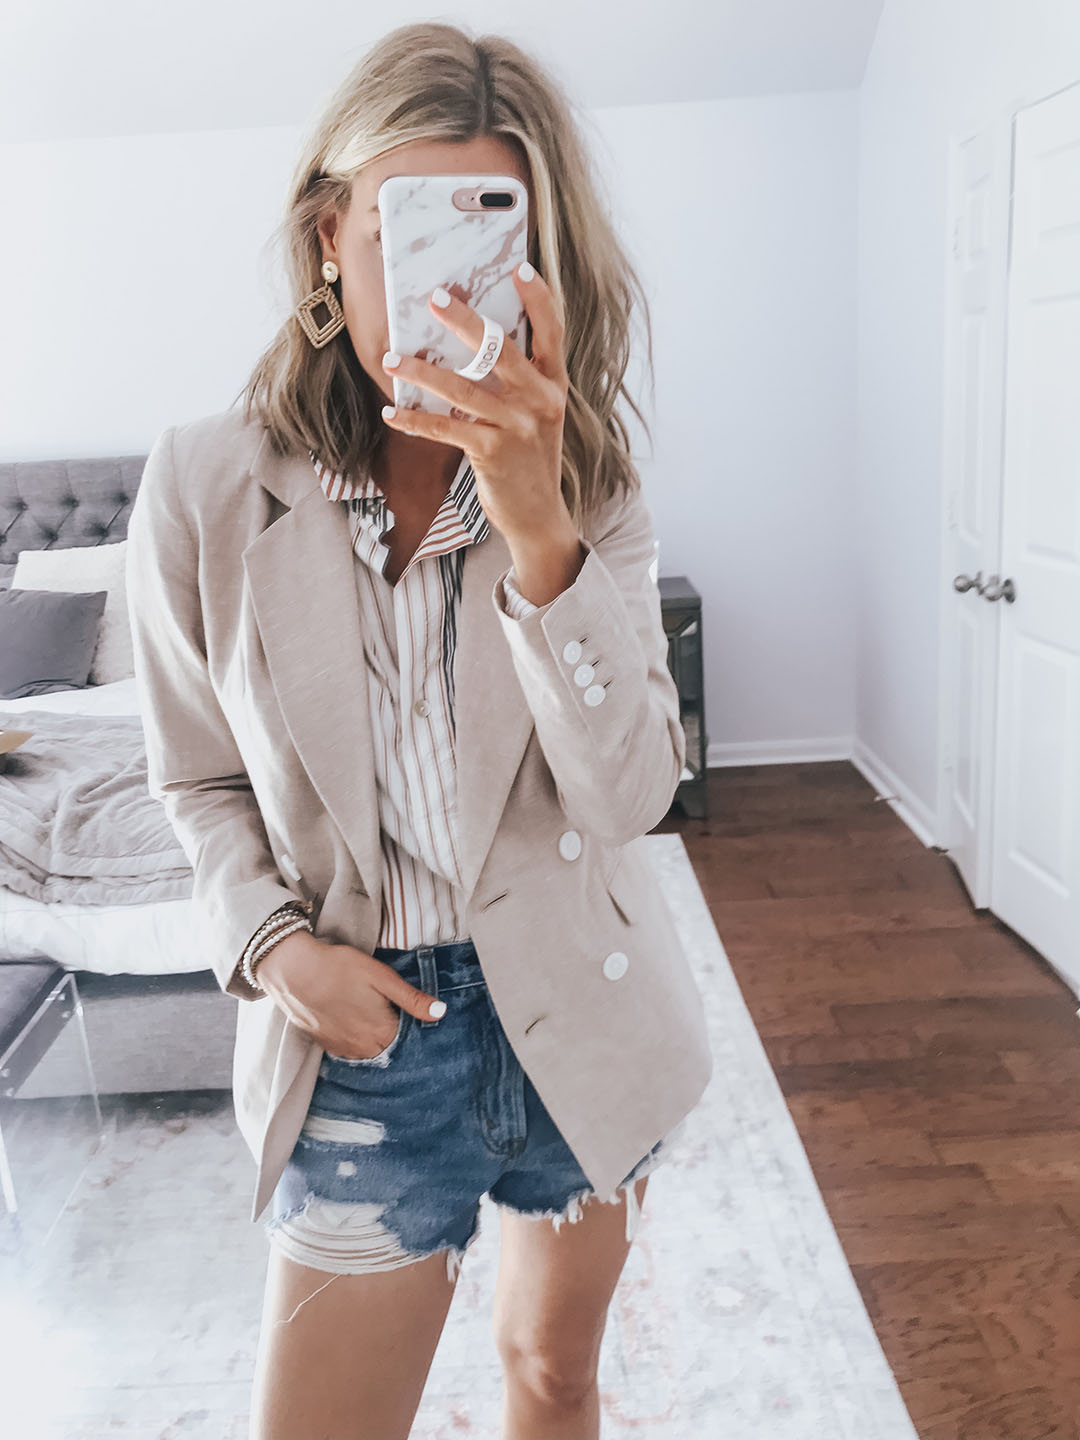 bc96a7e8dc8 OUTFIT ABOVE  Tan Linen Blazer (I sized down to a 2)    Stripe Collared  Blouse (fit TTS)    Fav Denim Shorts (size up to a 28 + on sale for  29!)